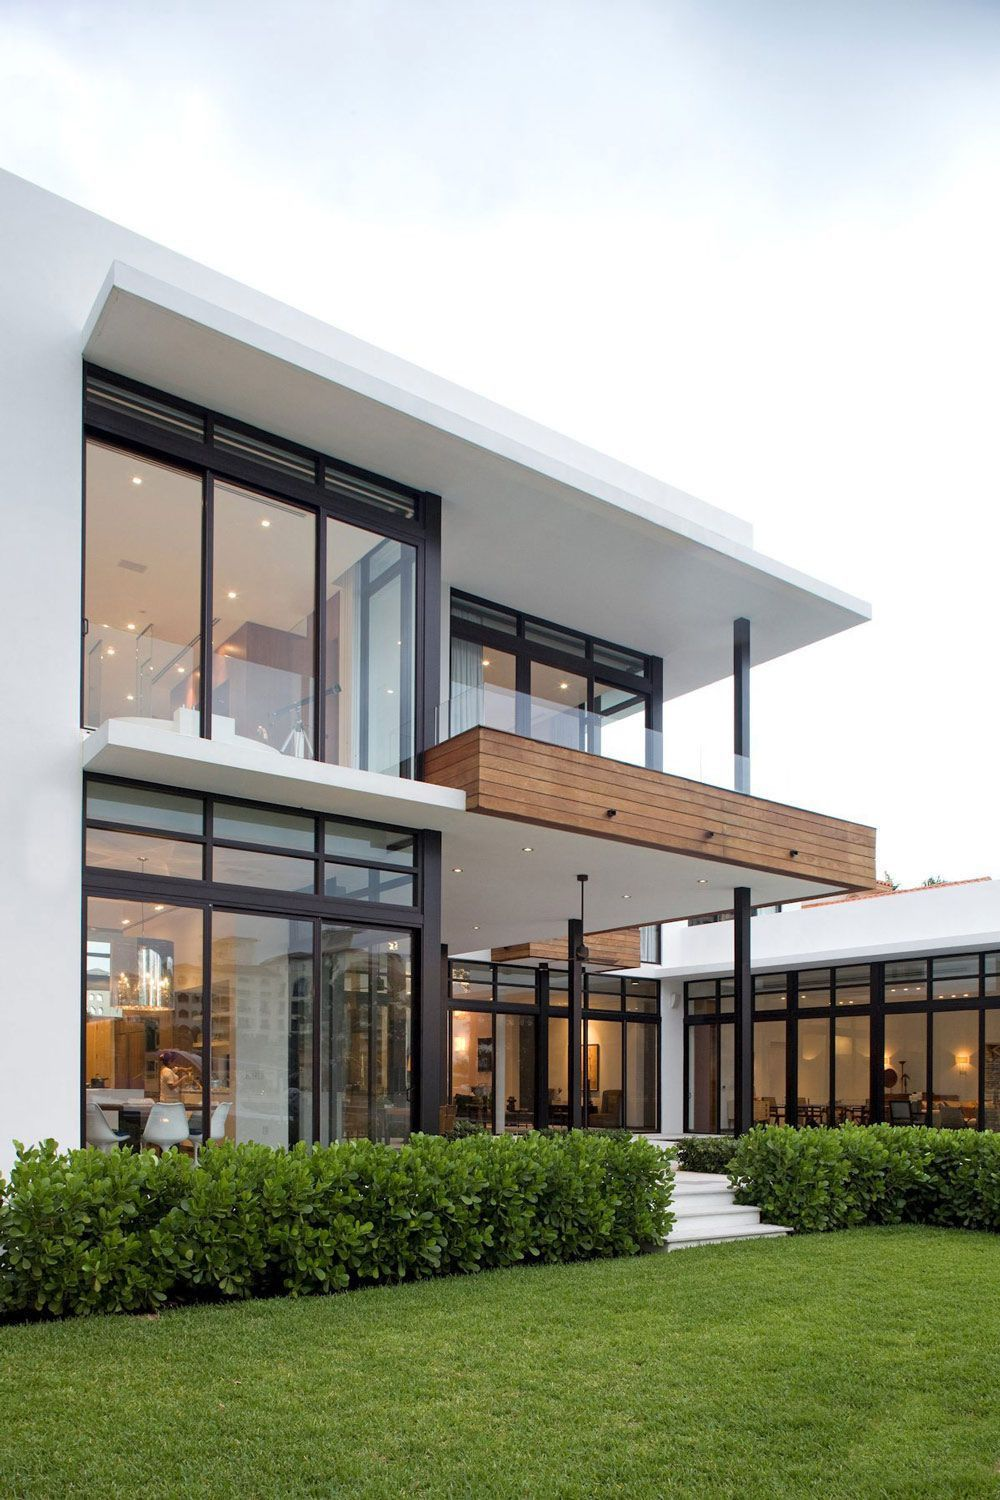 Modern House Plans With Lots Of Windows 2021 Glass House Design White Exterior Houses Modern House Exterior